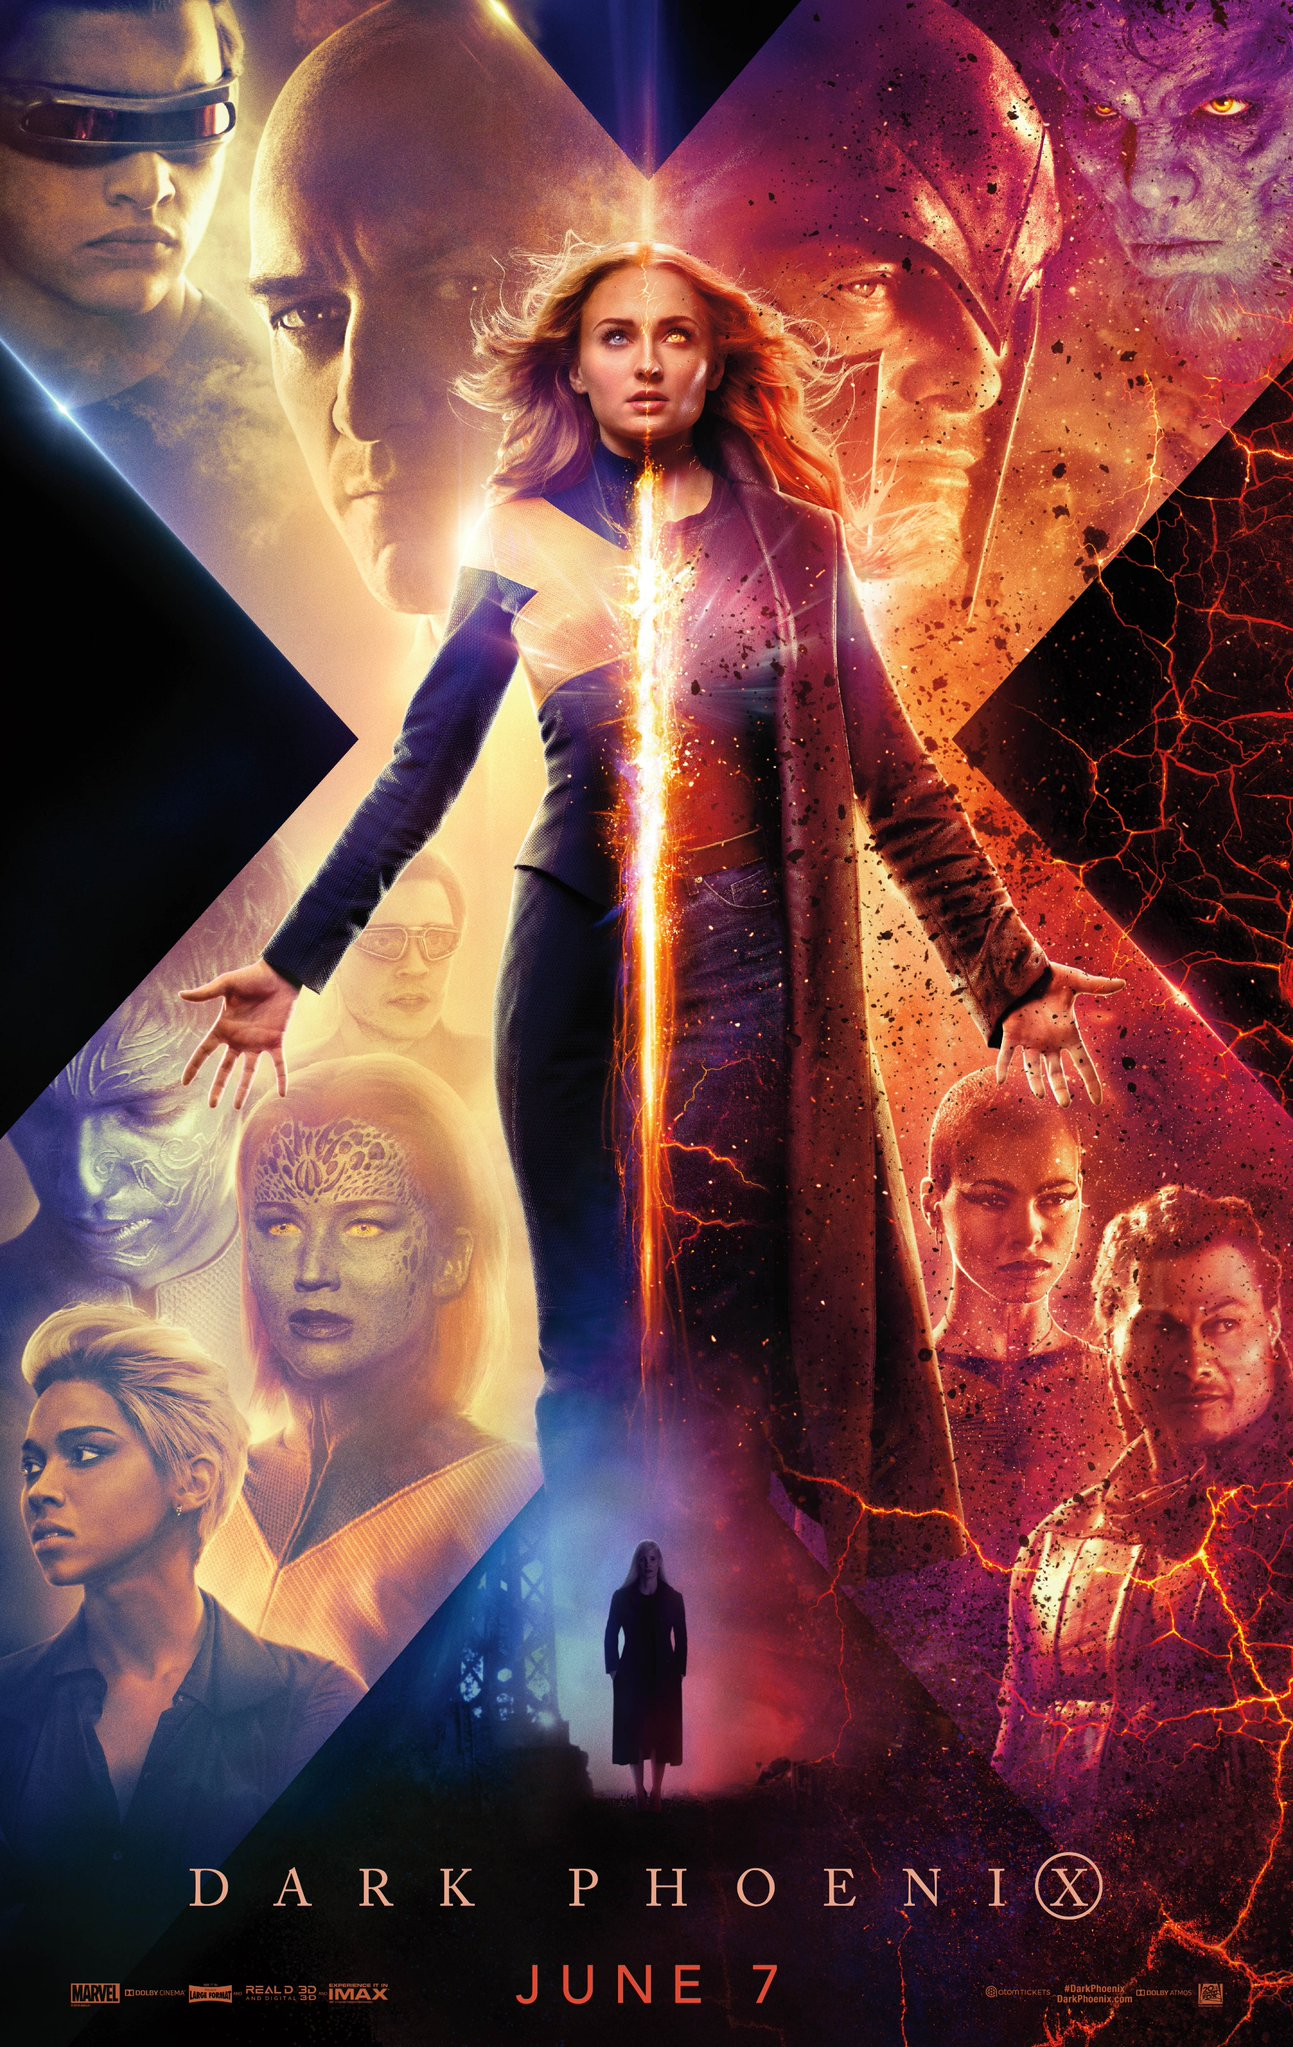 Will X-Men: Dark Phoenix be the last X-Men movie?